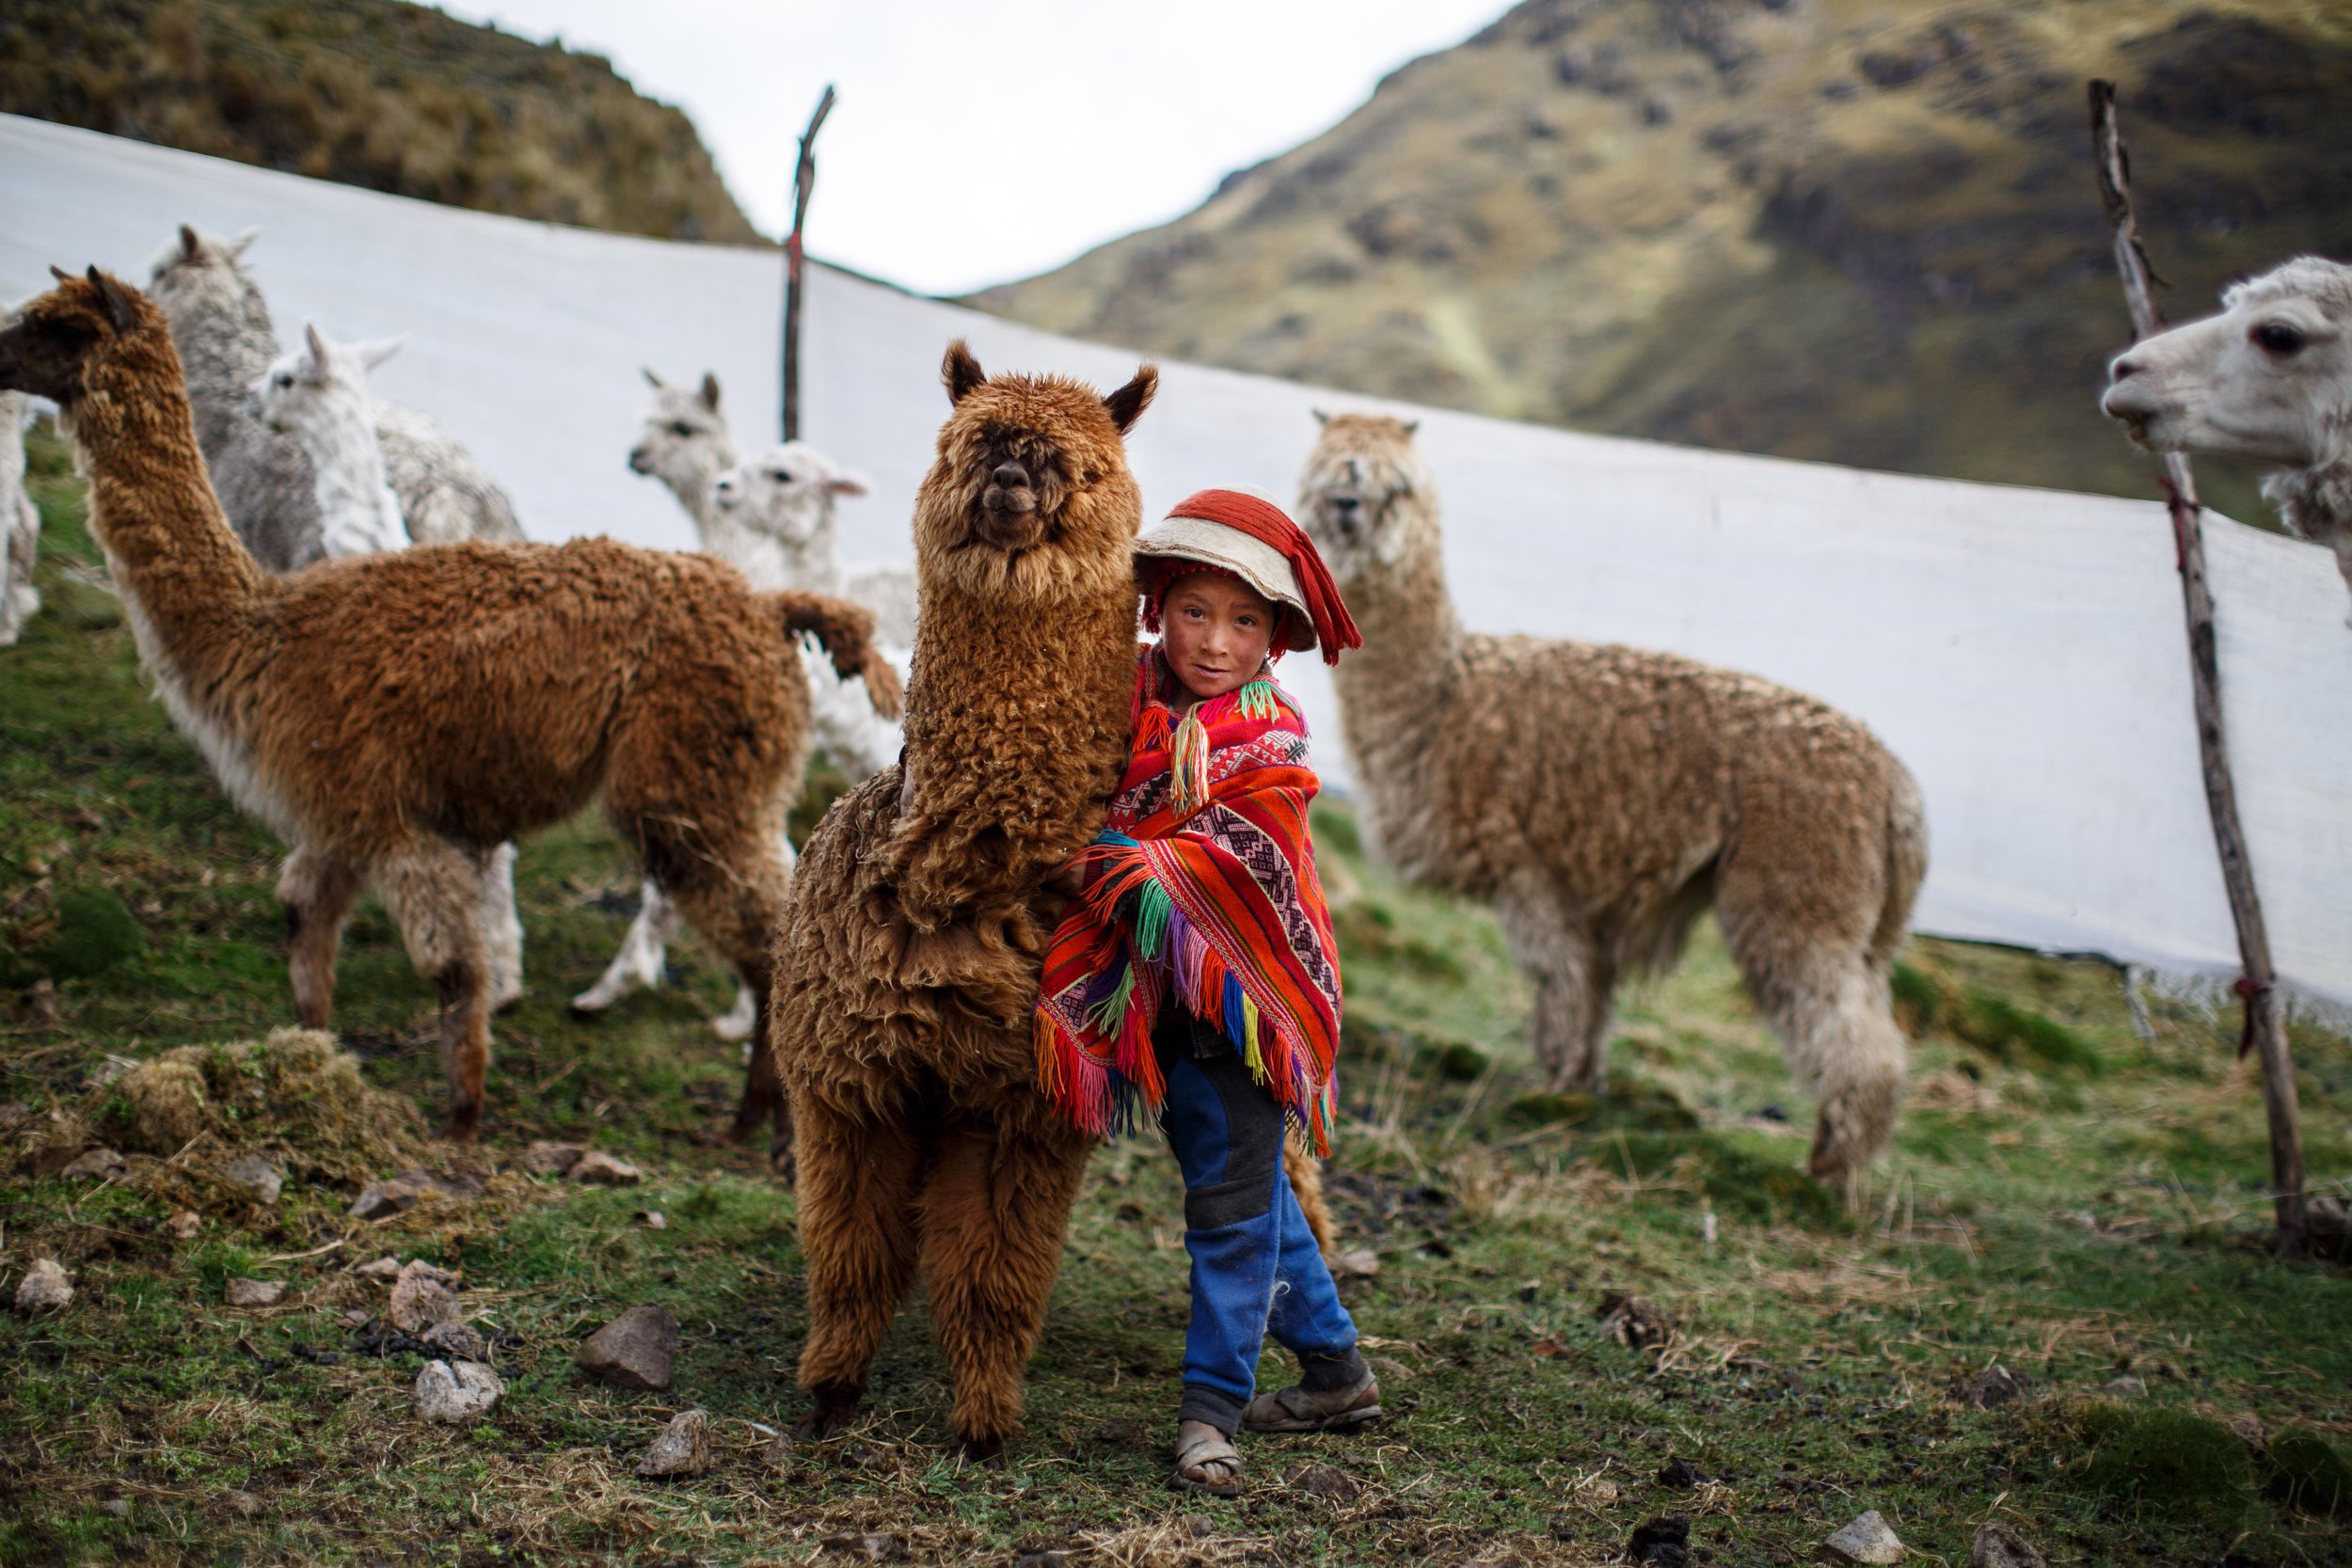 A boy and his favorite fluffy alpaca at the shearing.